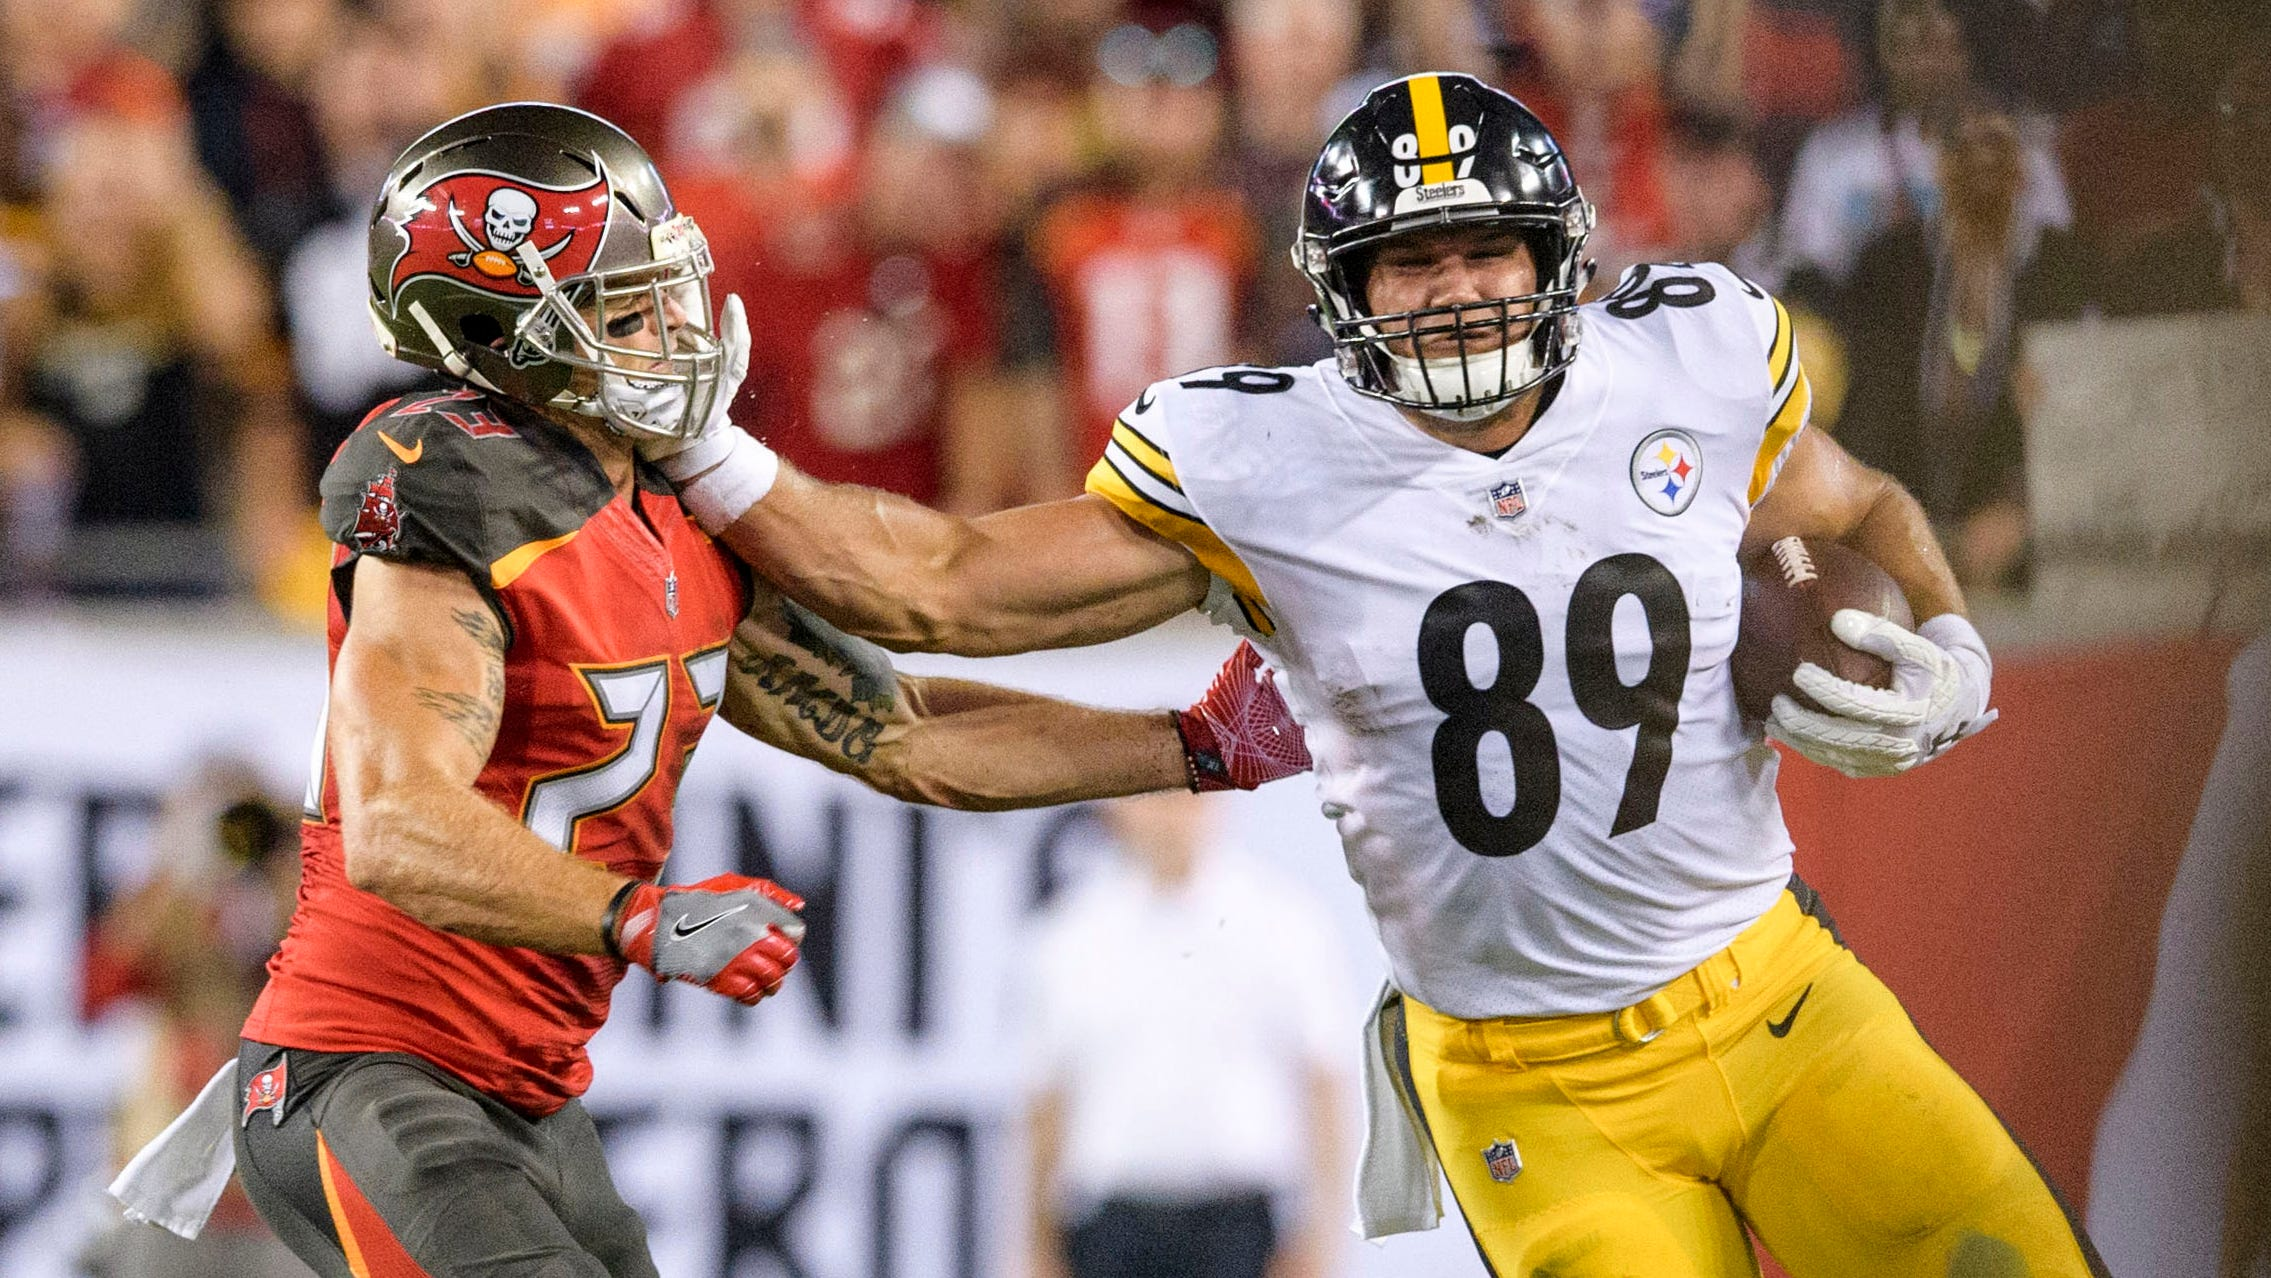 Buccaneers' Chris Conte ruled out with knee injury after being stiff-armed by Steelers' Vance McDonald